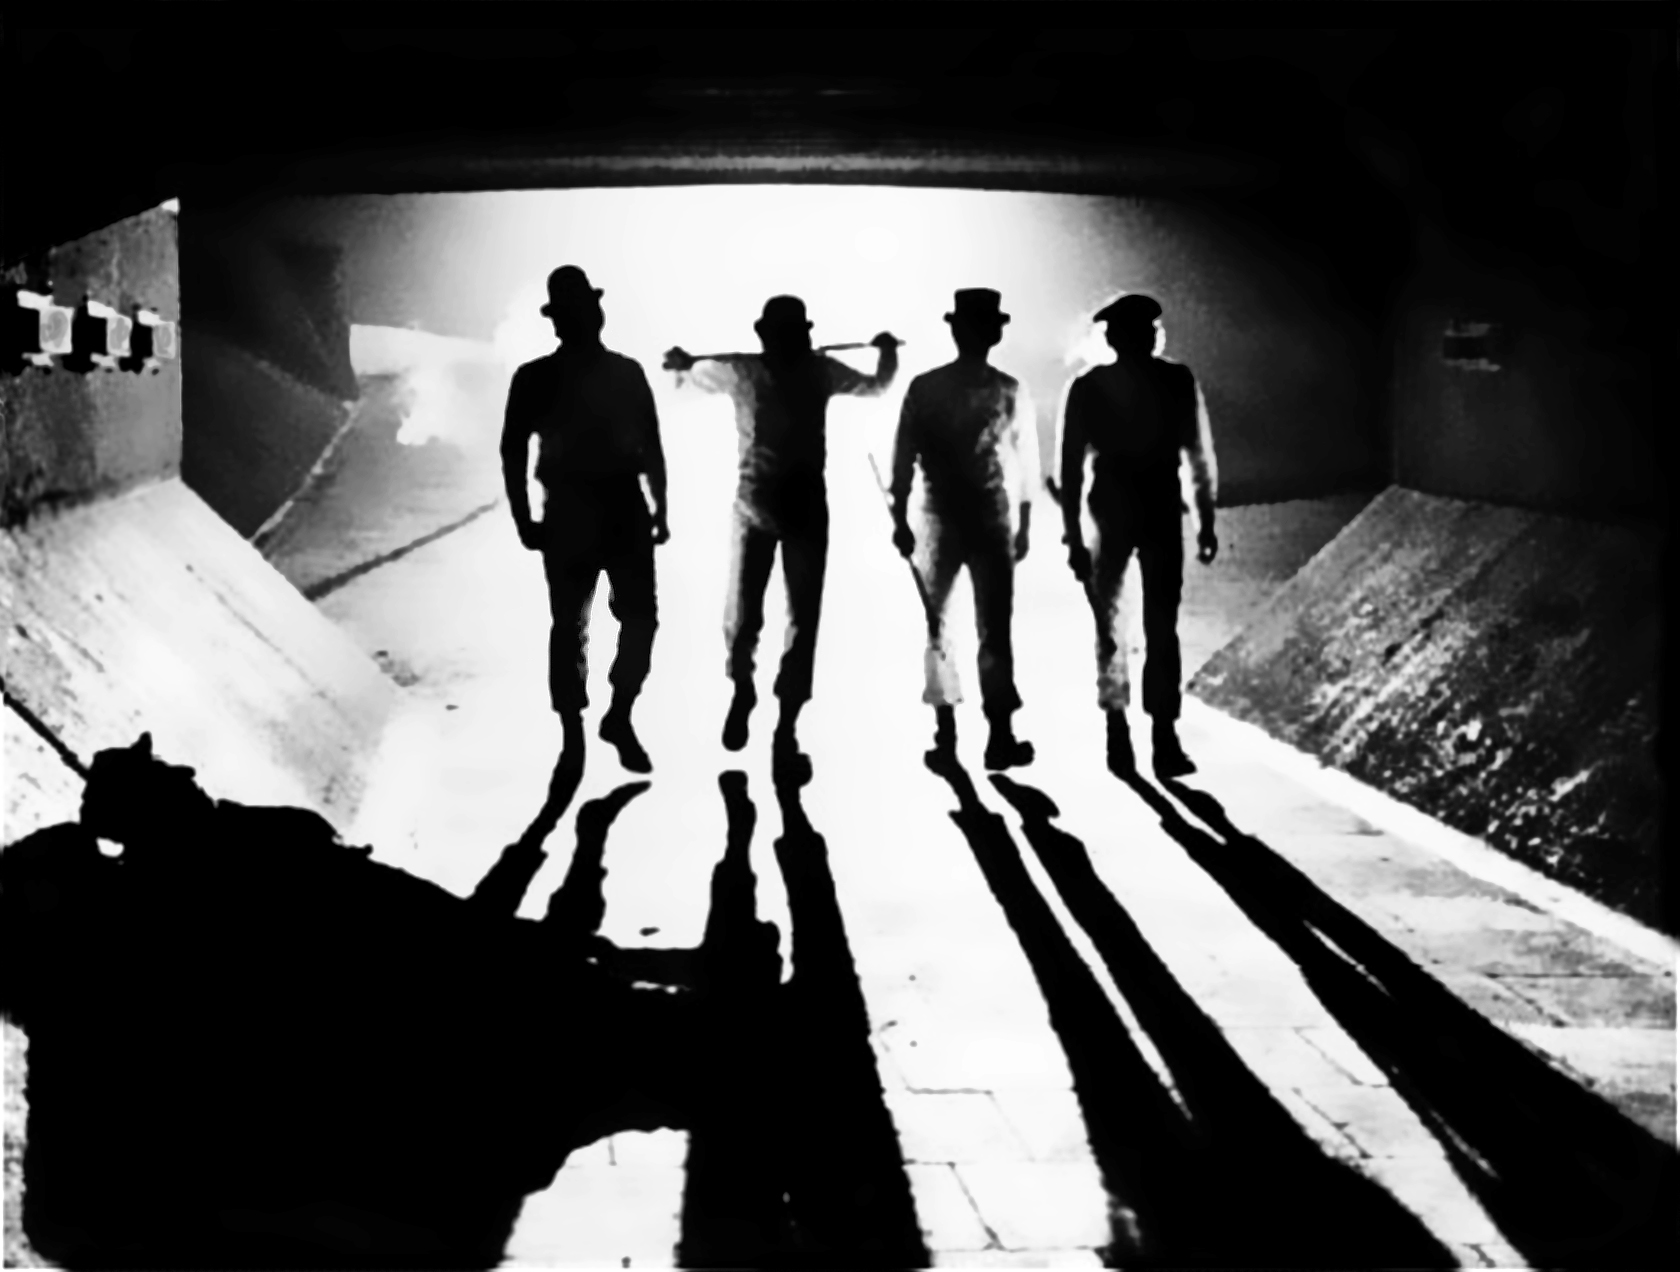 Droogs on their way to some ultra-violence, now as then.